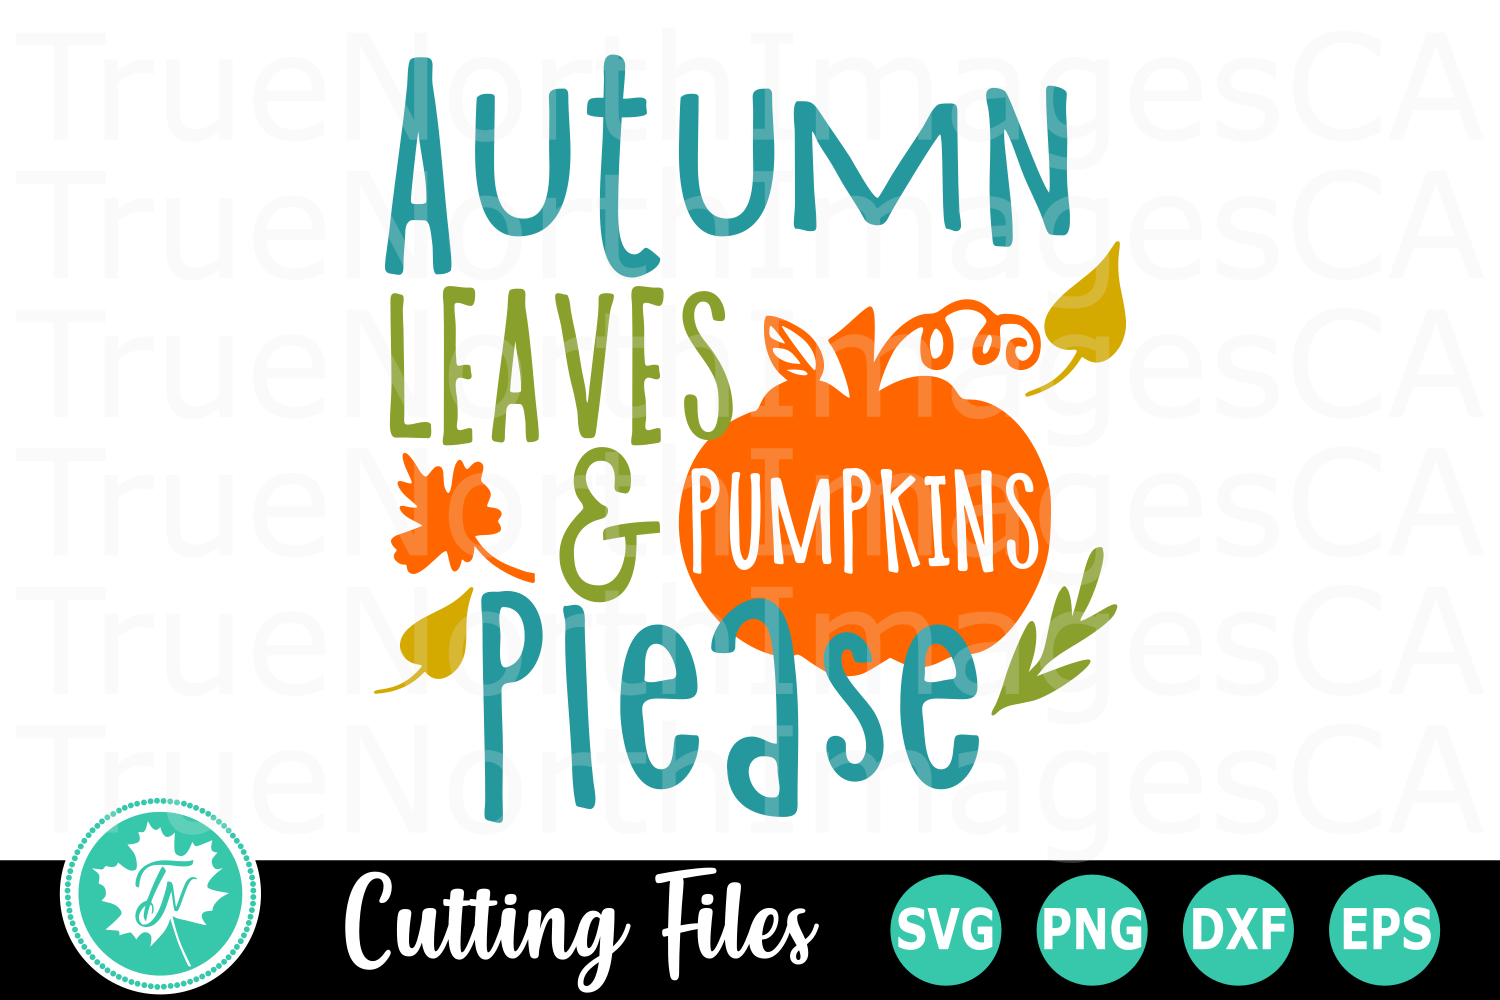 Autumn Leaves and Pumpkins Please - A SVG Cut File example image 1